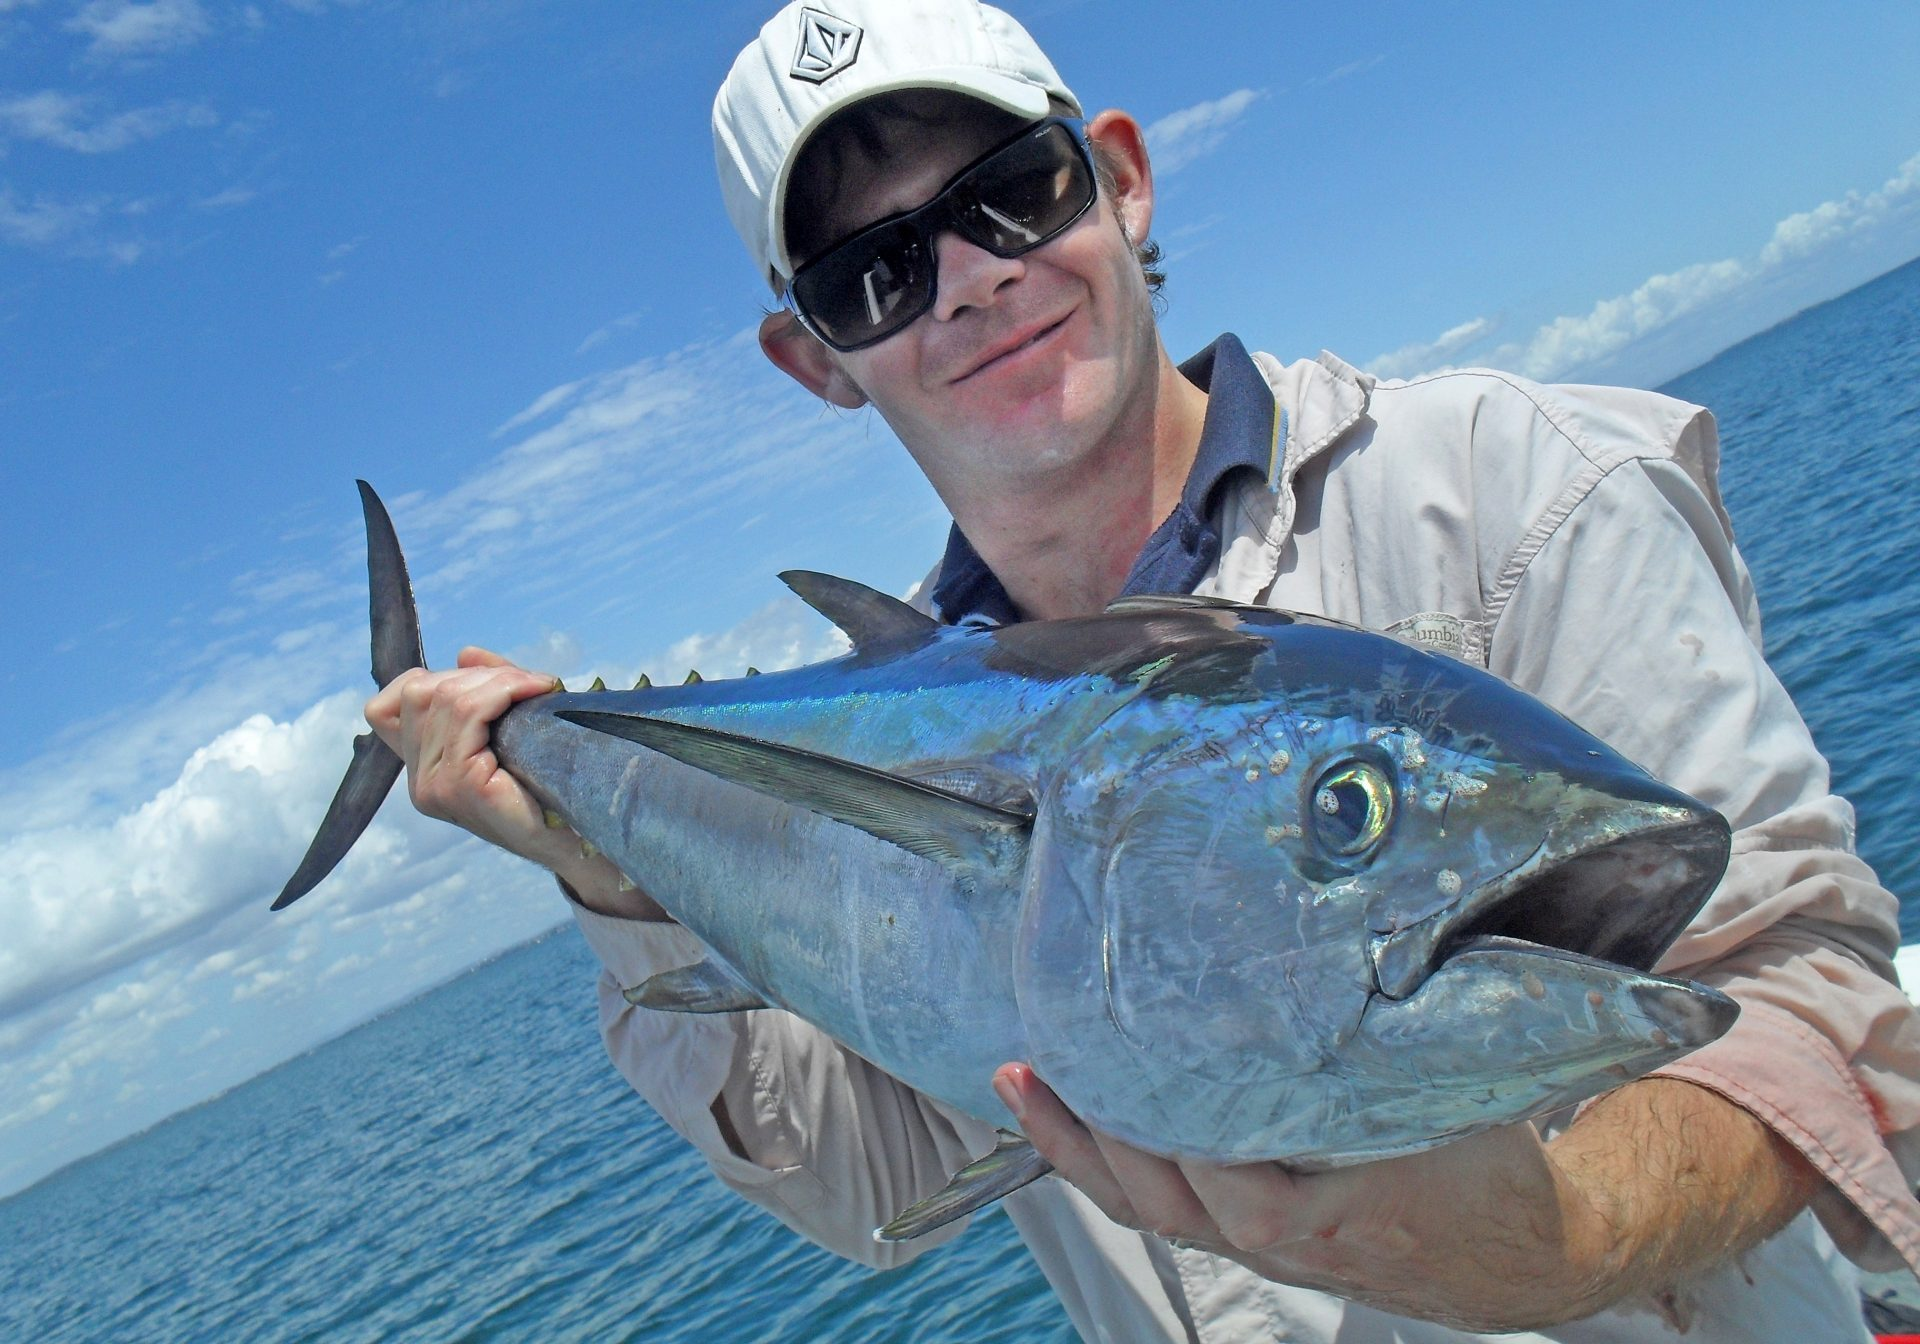 The result – a 7-8kg longtail tuna caught on a 3-inch Atomic Slider